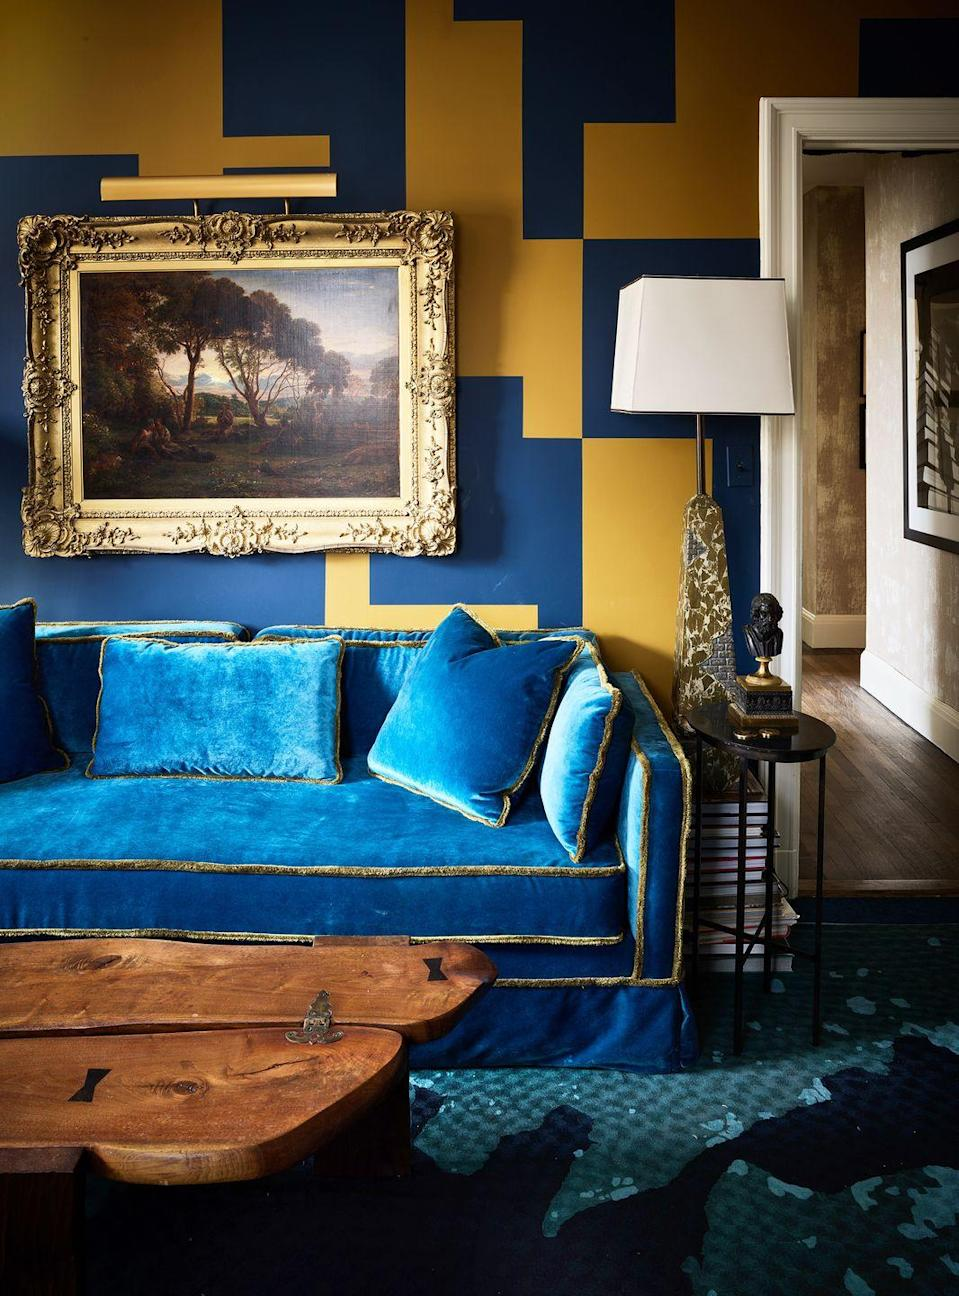 """<p><a href=""""https://www.housebeautiful.com/design-inspiration/house-tours/a33538067/ann-pyne-mcmillen-apartment/"""" rel=""""nofollow noopener"""" target=""""_blank"""" data-ylk=""""slk:Ann Pyne"""" class=""""link rapid-noclick-resp"""">Ann Pyne</a> worked with decorative painter Arthur Fowler to create a contrasting geometric pattern on the walls. """"I think of the puzzle-like shapes as a metaphor—it's a game of fitting all these disparate 'treasures' into a graphically coherent whole,"""" she says. Matte navy blue and a gritty mustard-tone work together to set a pensive and seductive backdrop—perfect for a smaller living room. </p>"""